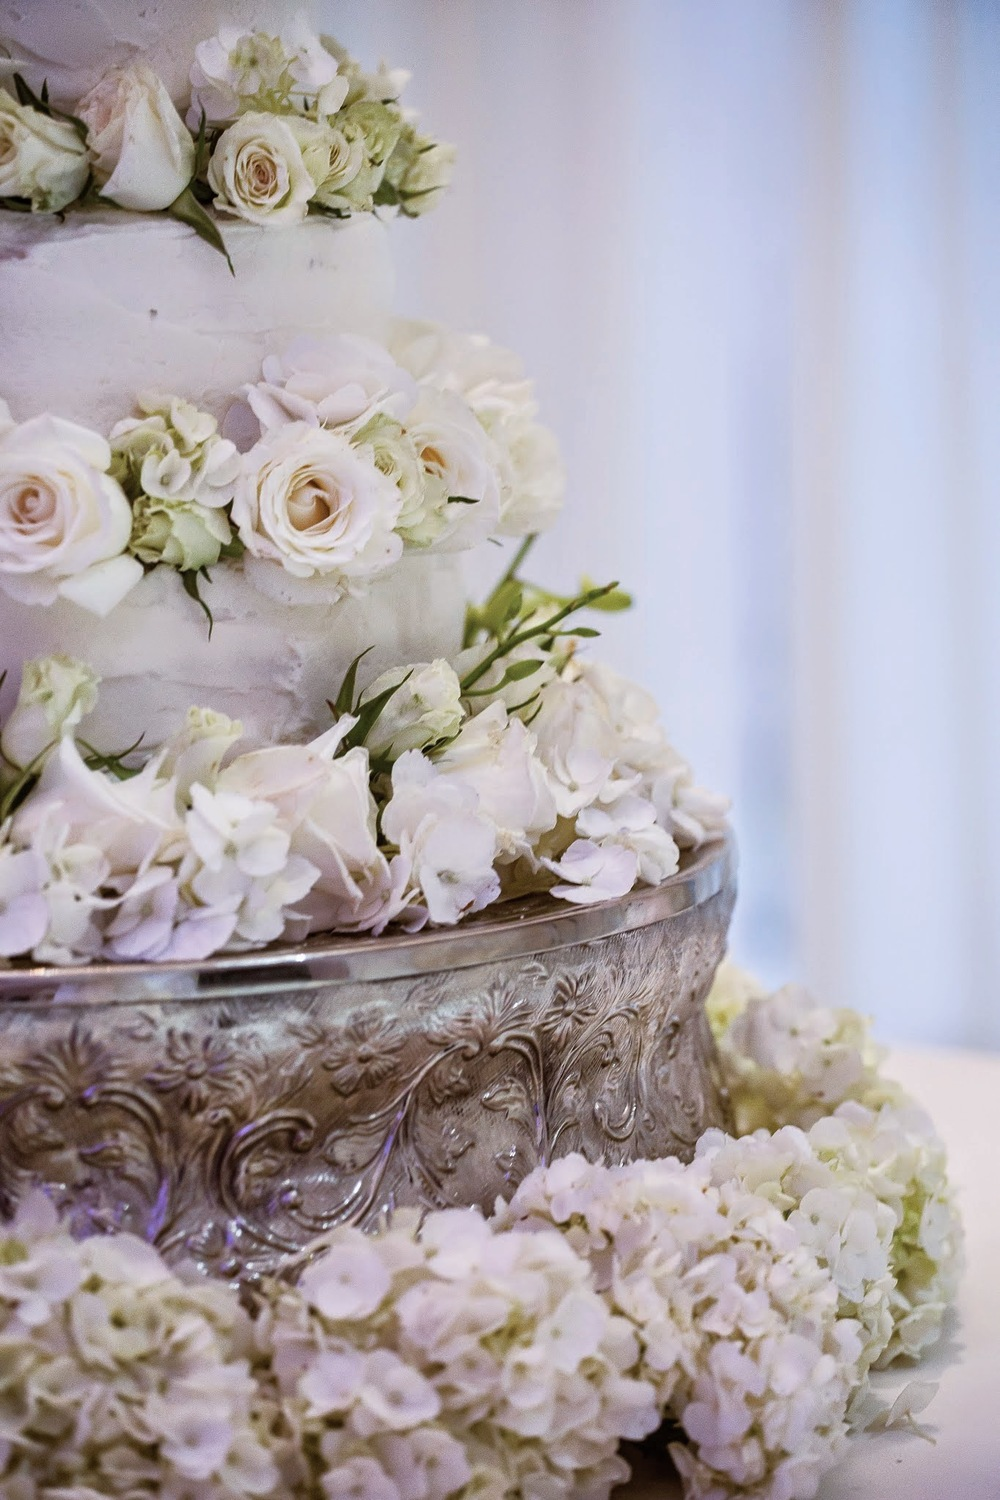 Creme de le Chic Events, Clayton Brannon Photography, Atlanta GA  #cremedelechic #atlantawedding